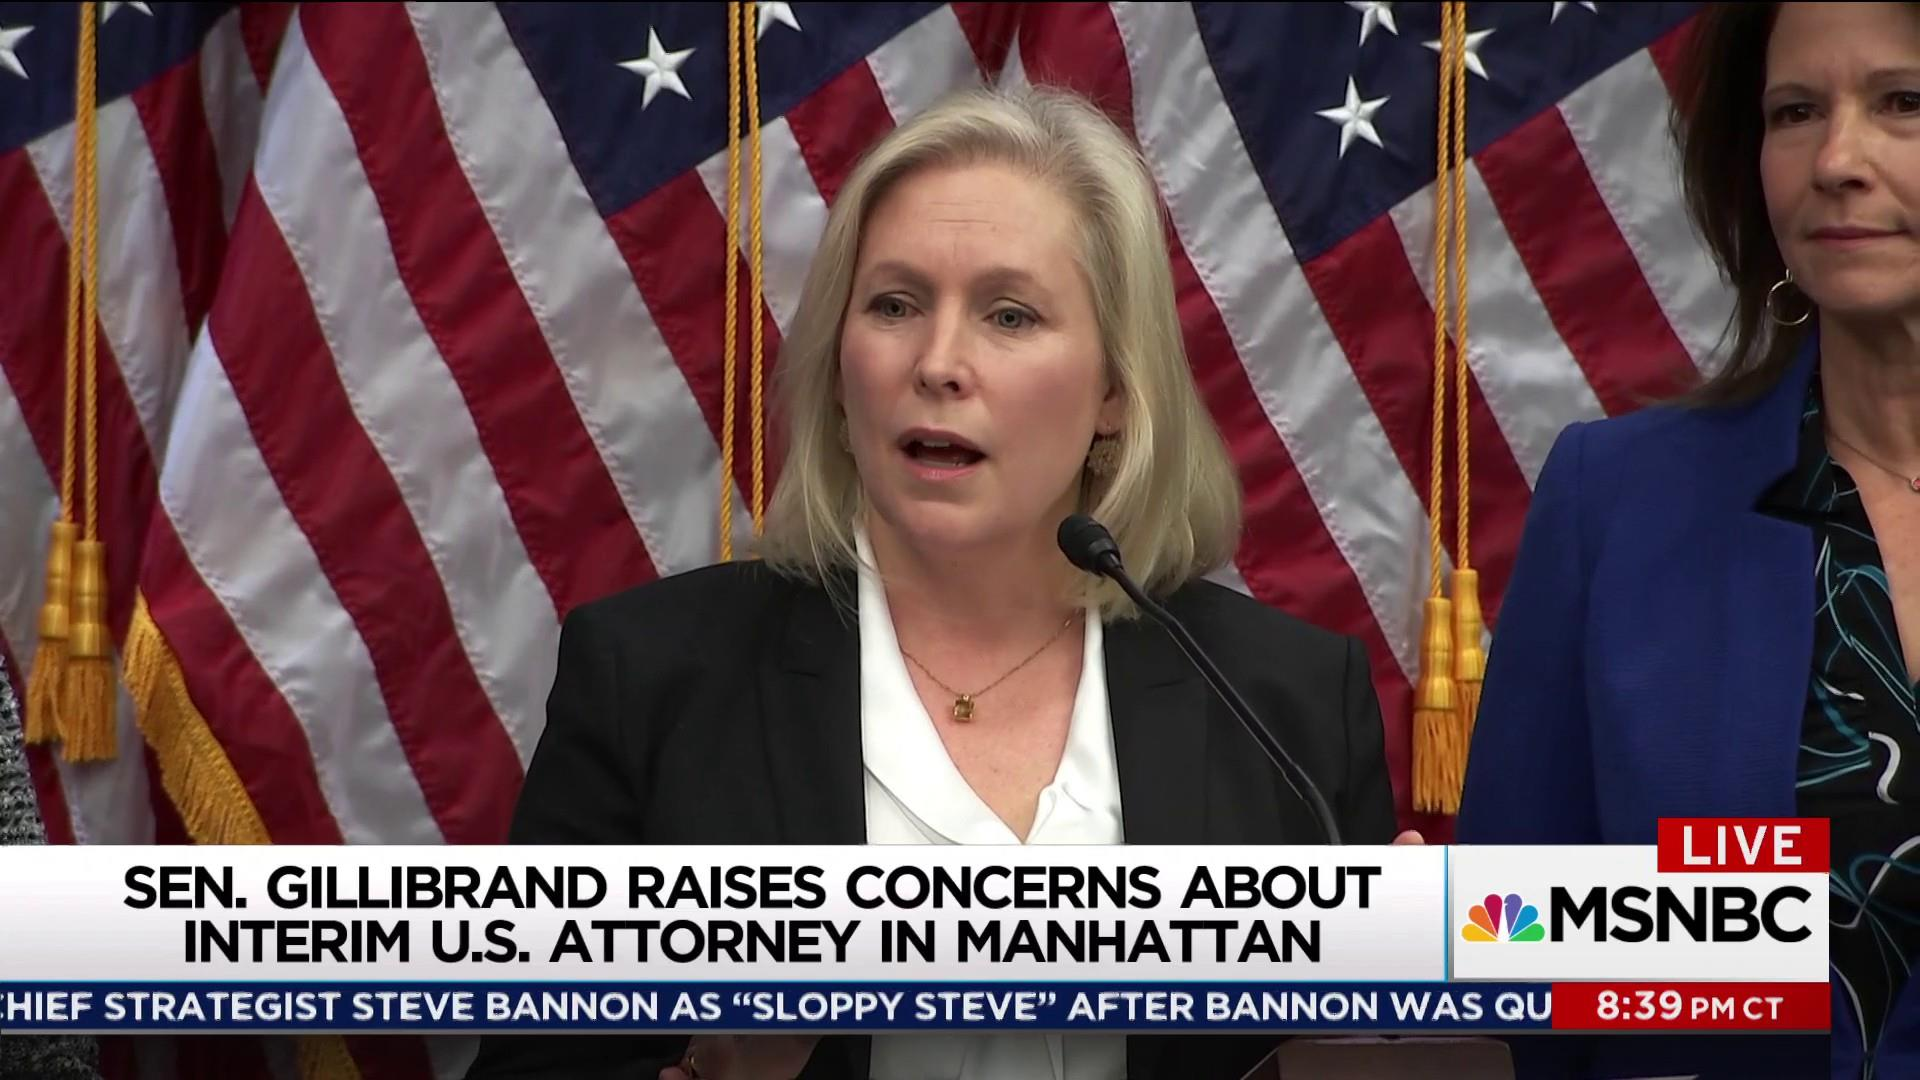 Gillibrand cries foul on interim US attorney